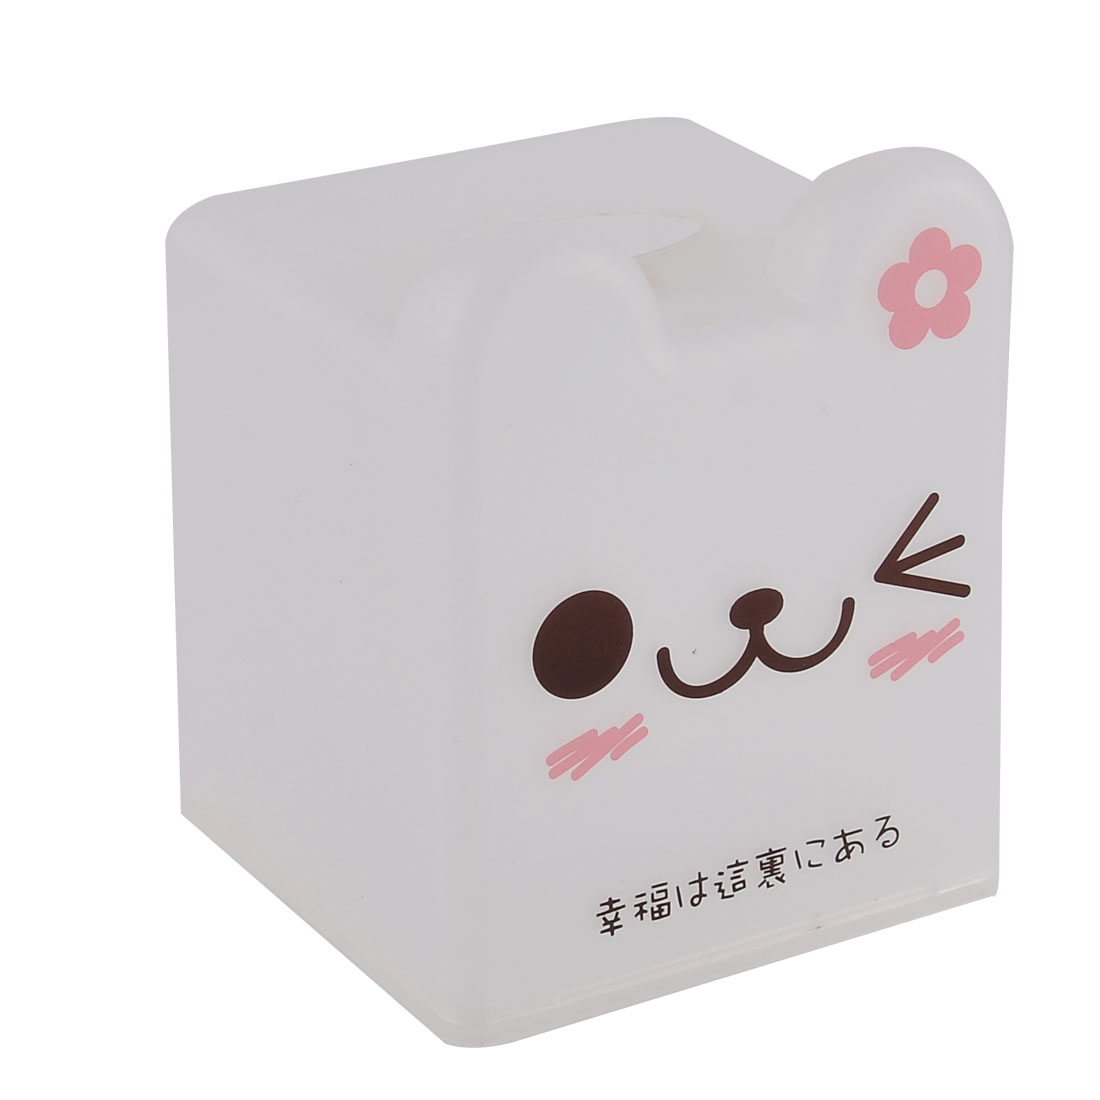 Household Bathroom Square Shaped Kitty Pattern Napkin Roll Tissue Paper Box Case Holder Cover Storage White